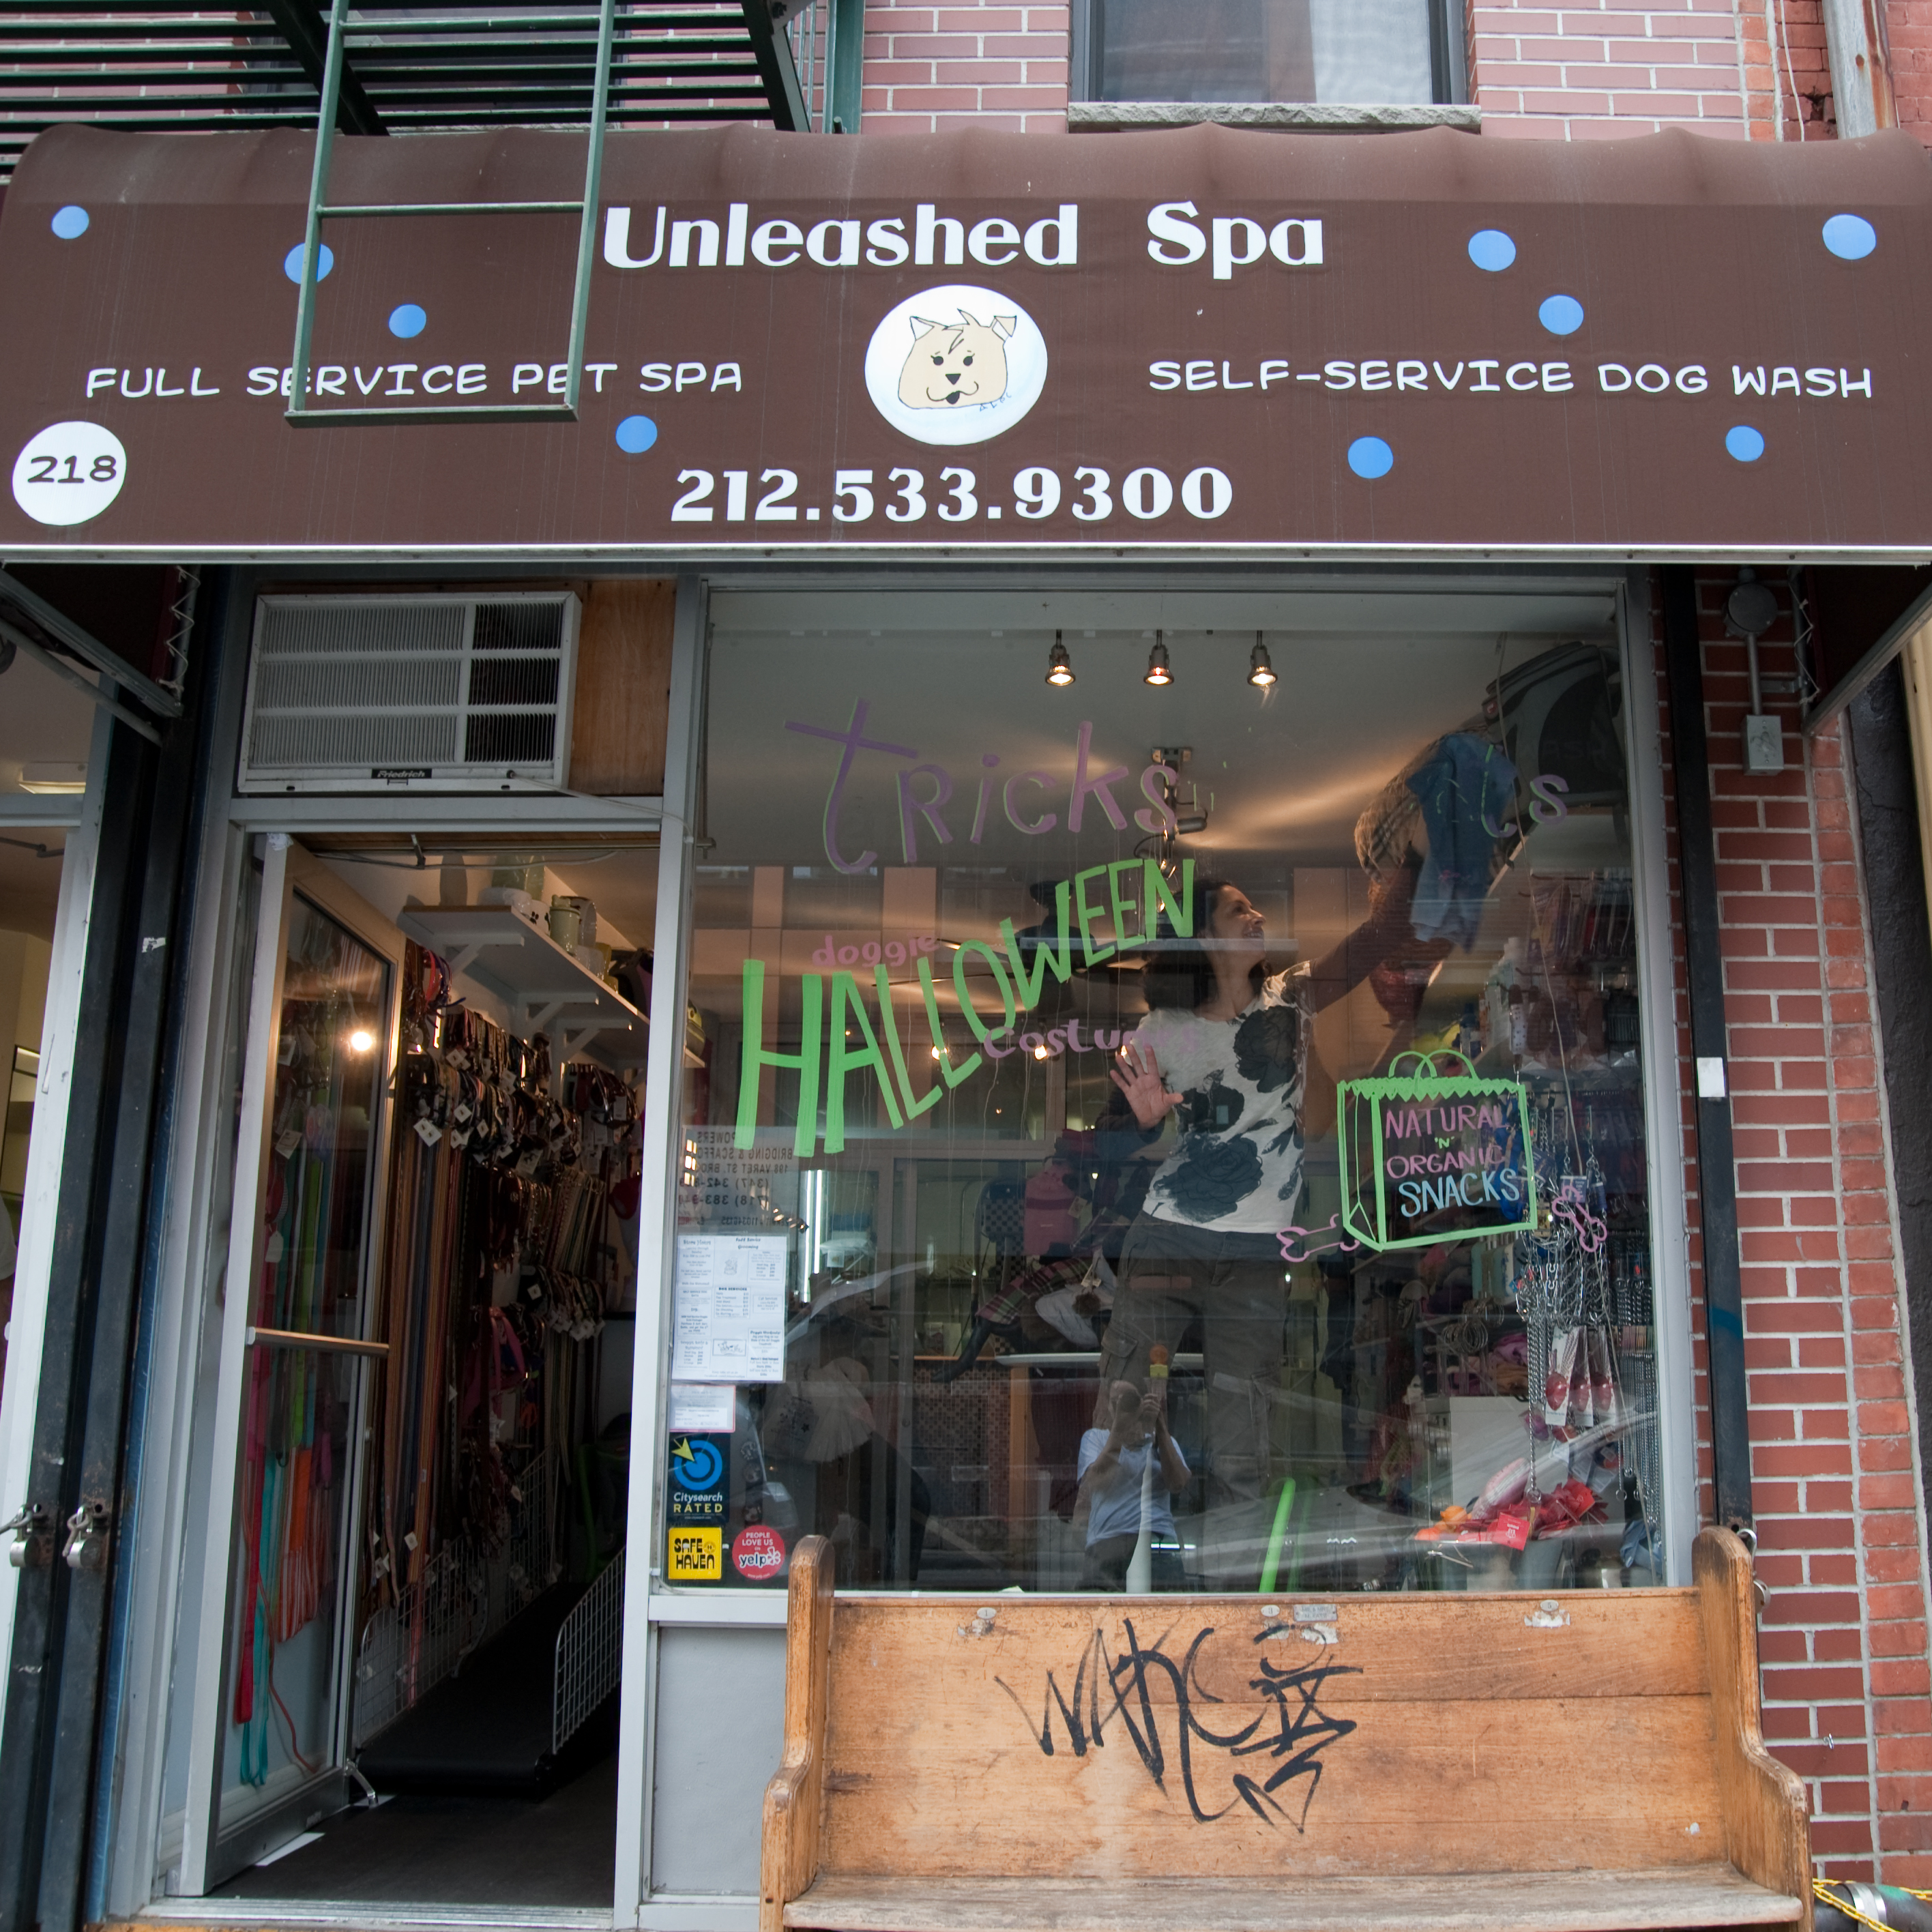 Pet Friendly Unleashed Spa